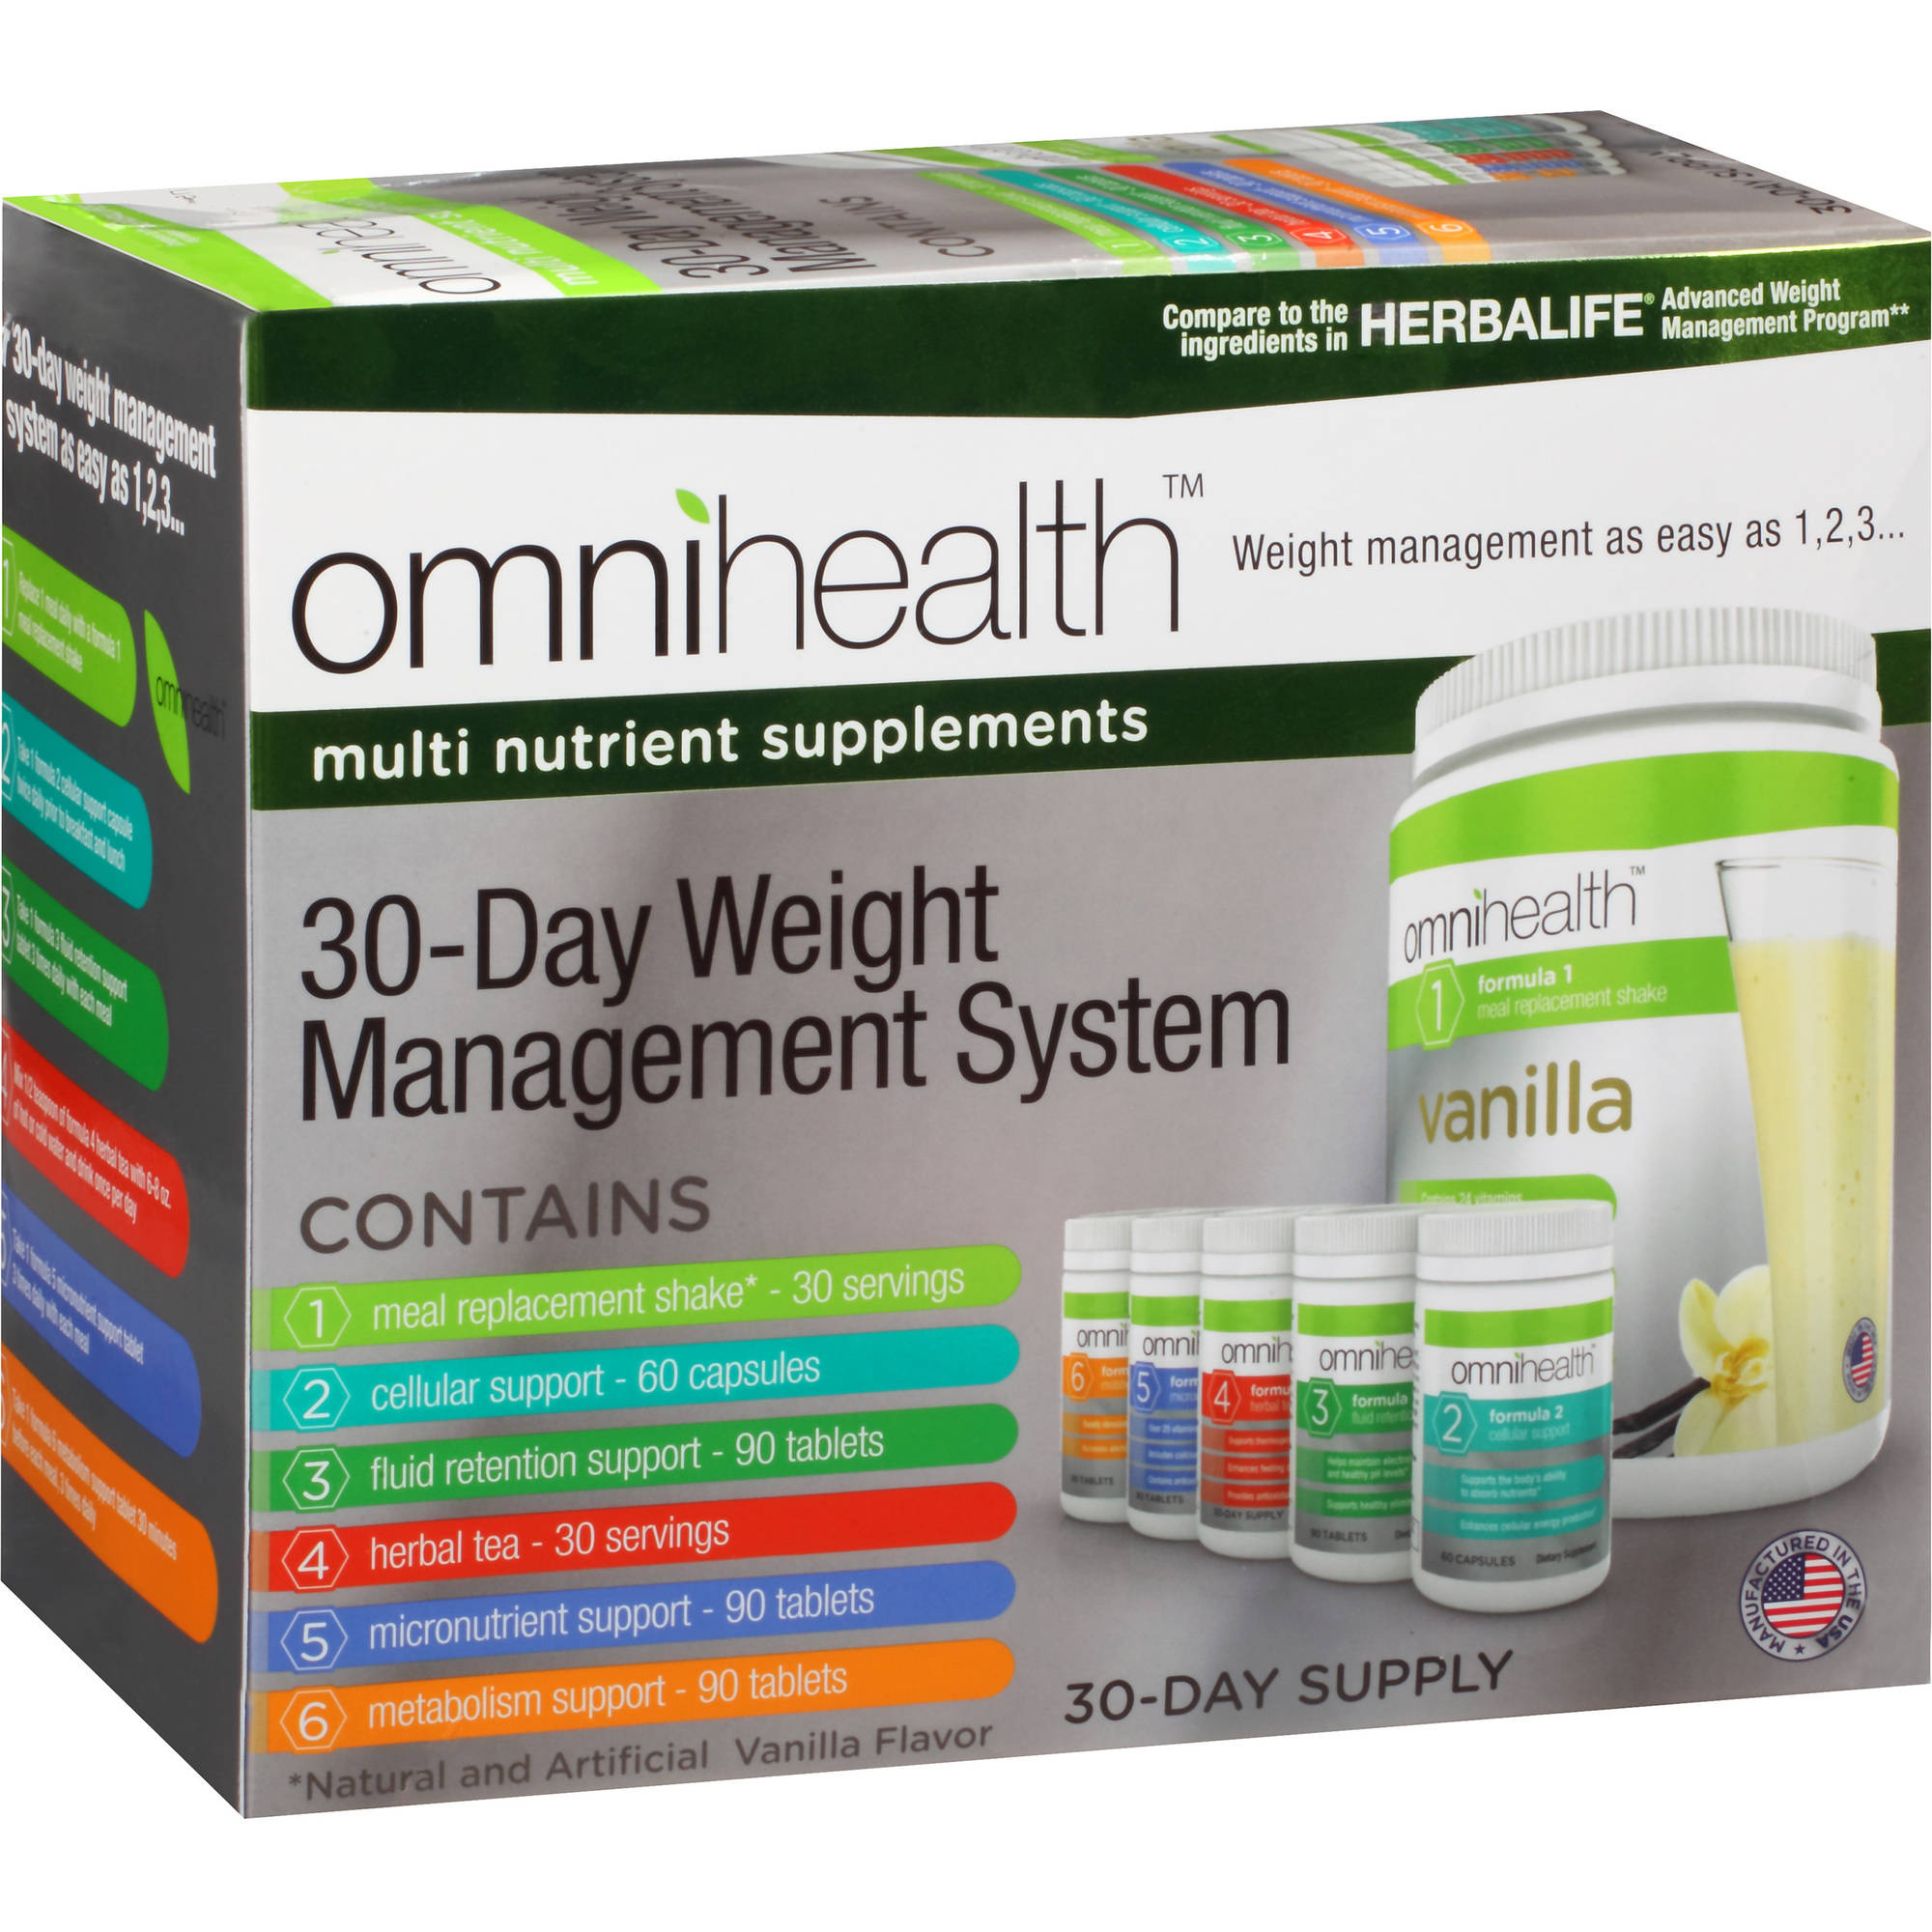 ... omnihealth 30-Day Weight Management System, 390 count